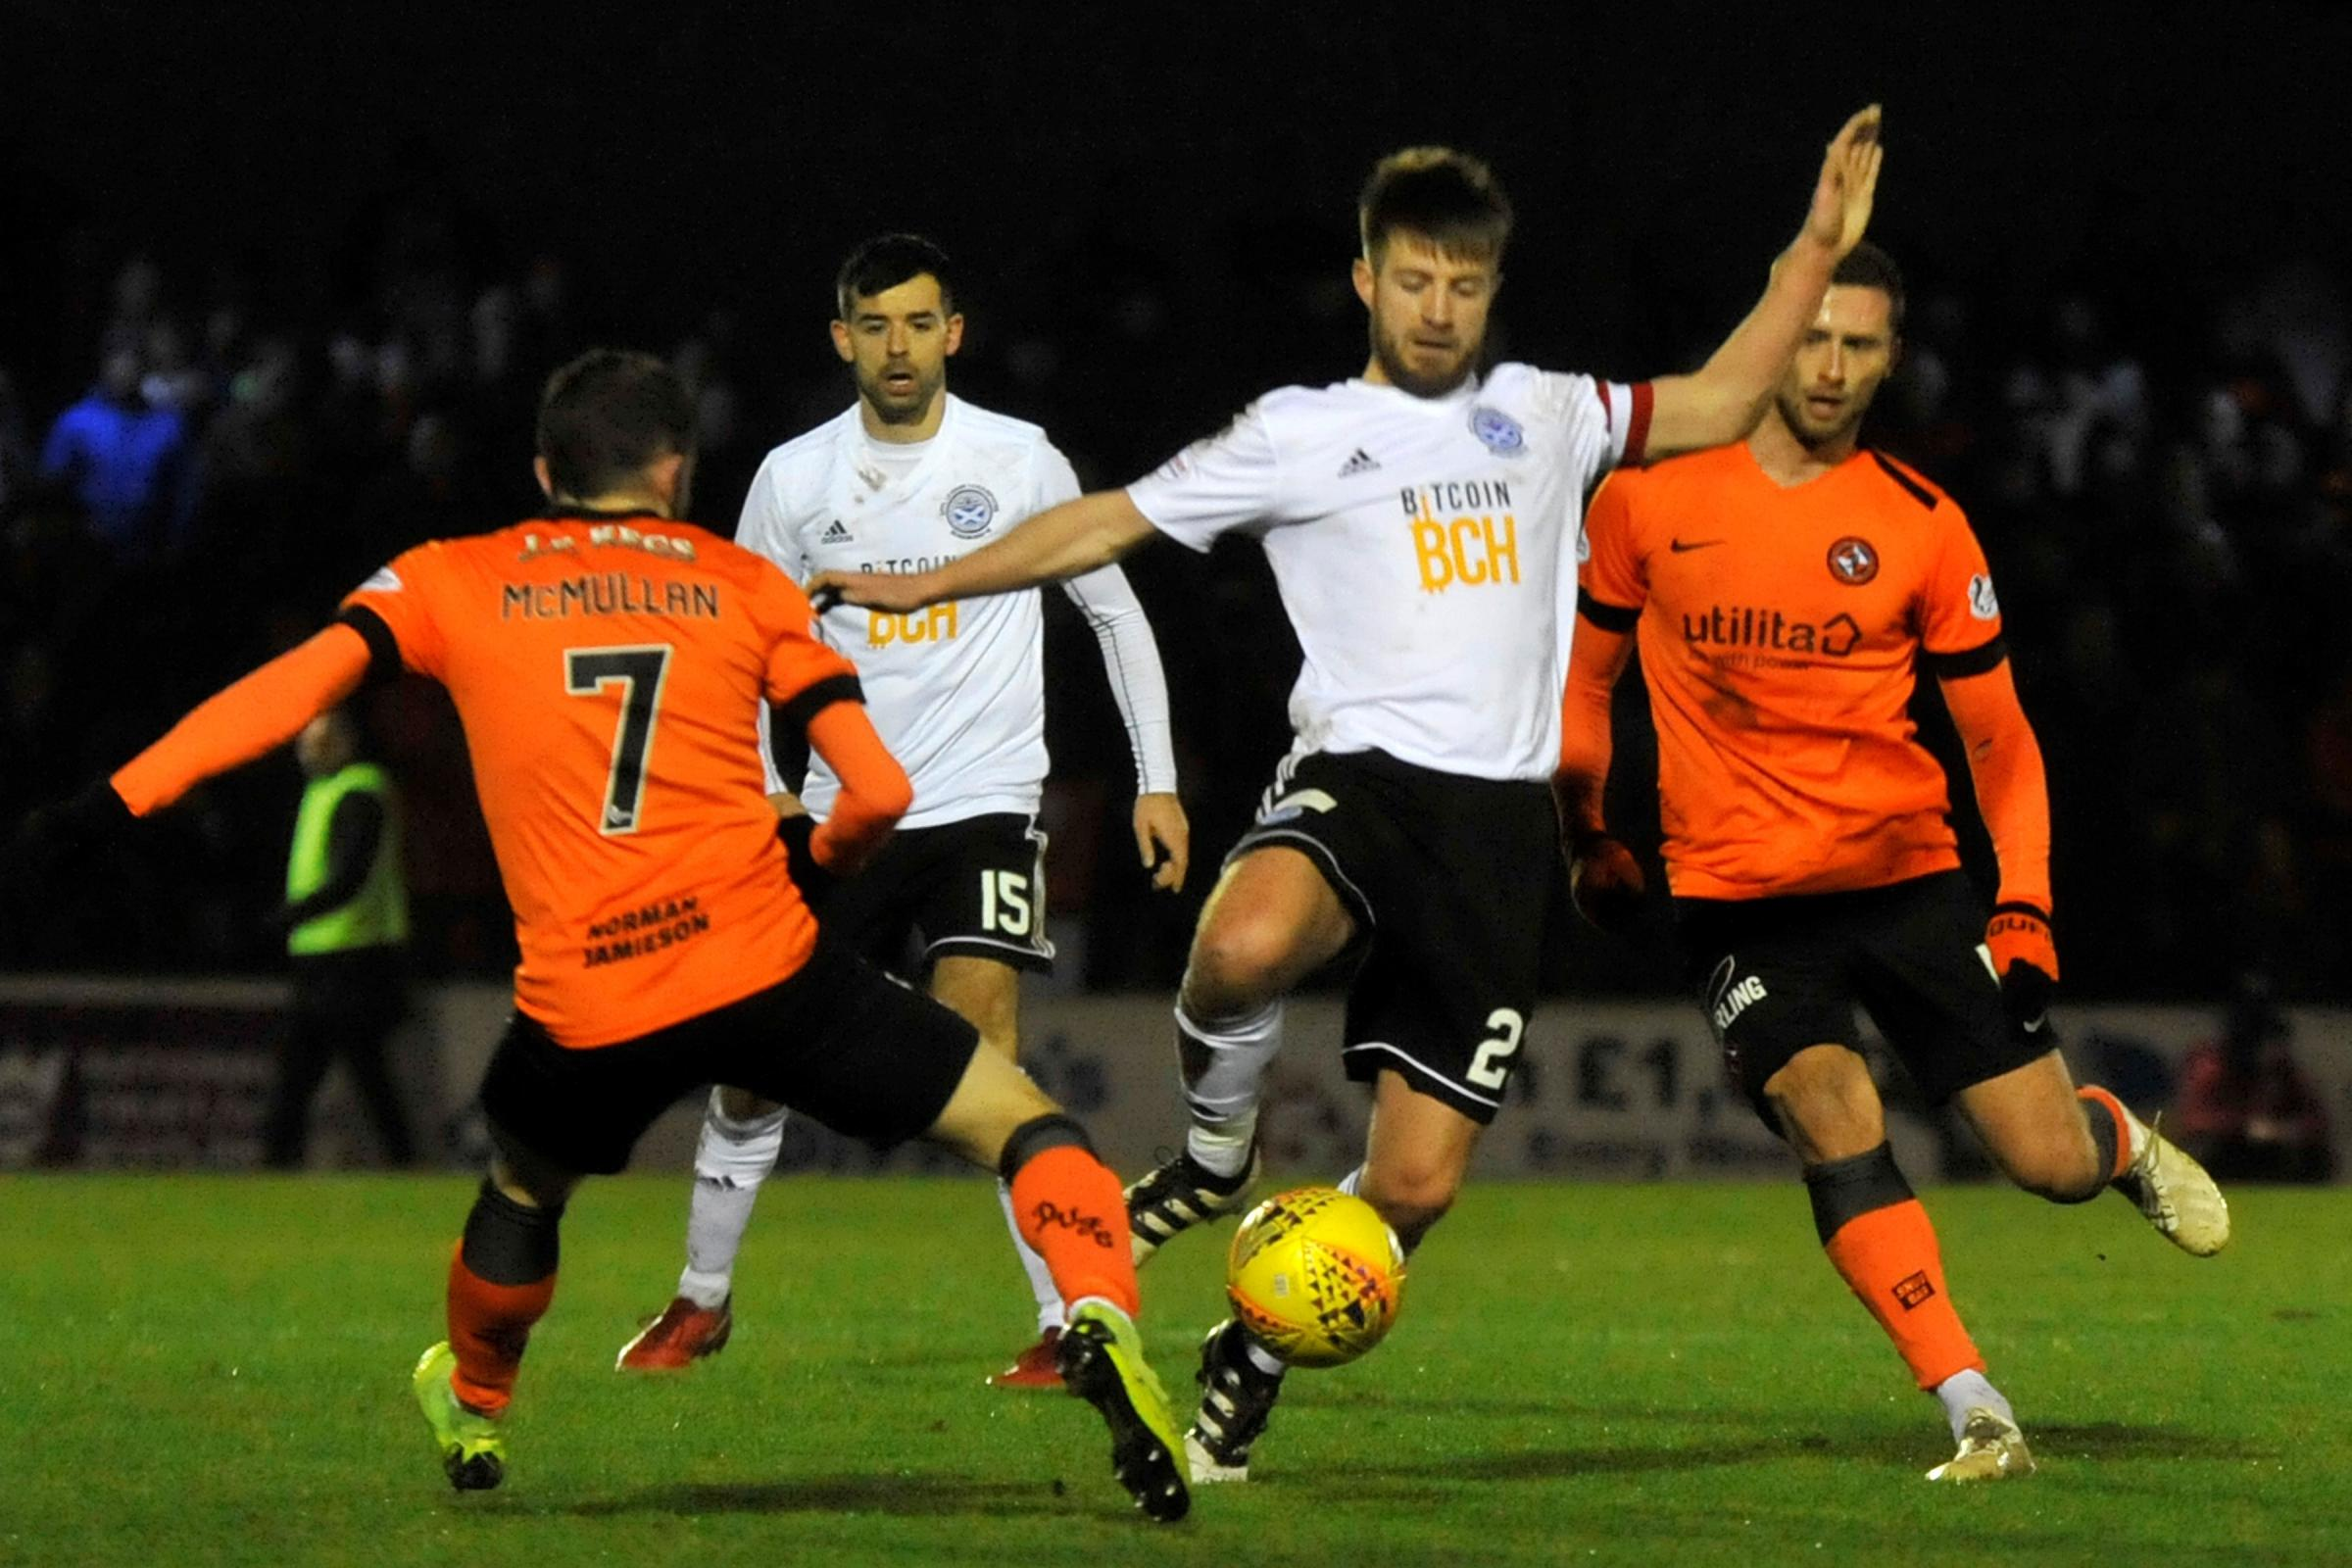 Ayr United game goes ahead